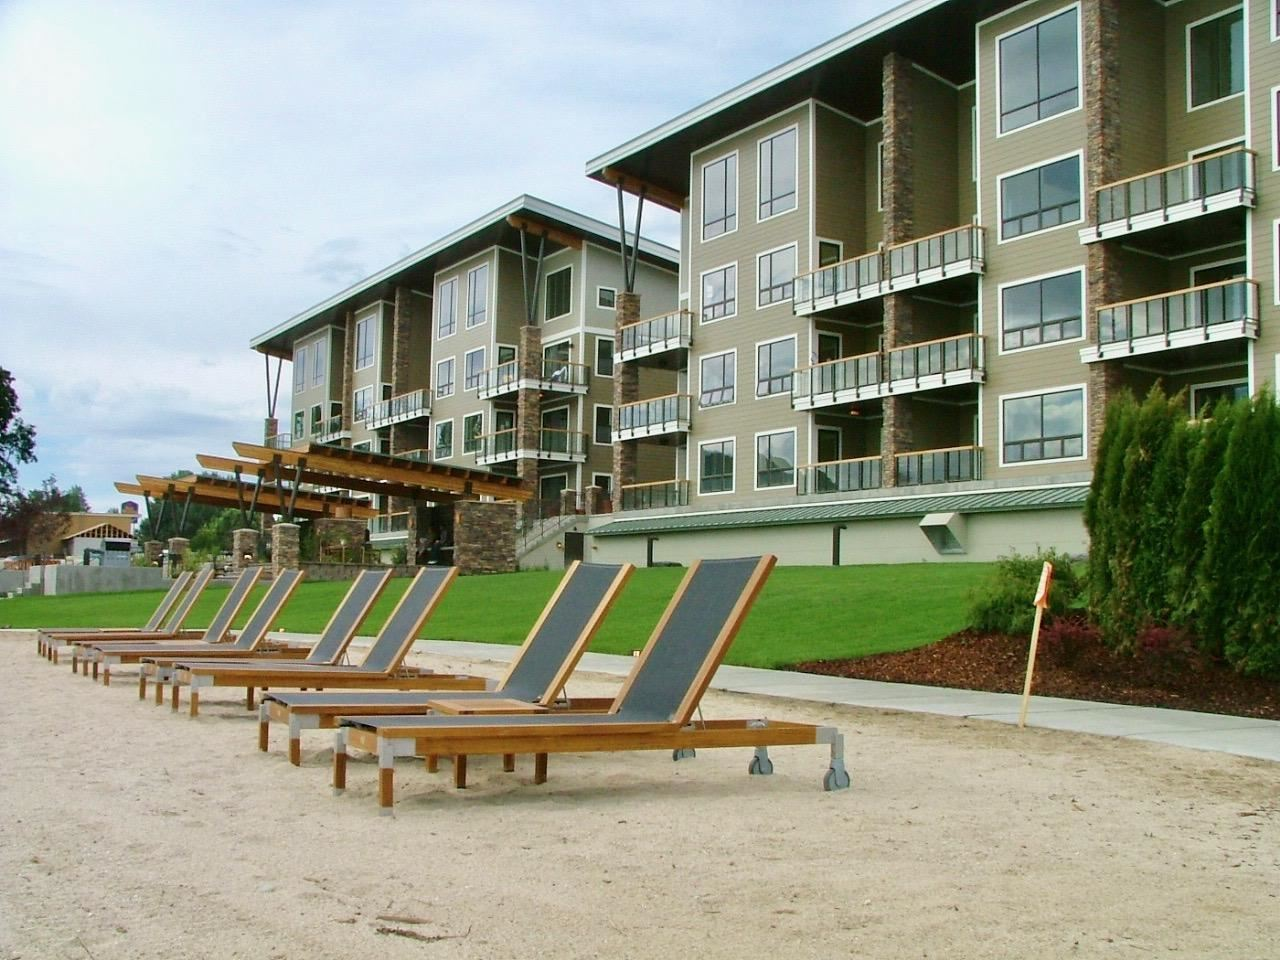 Photo of 412 Sandpoint Ave #235, Sandpoint, ID 83864 (MLS # 21-4153)